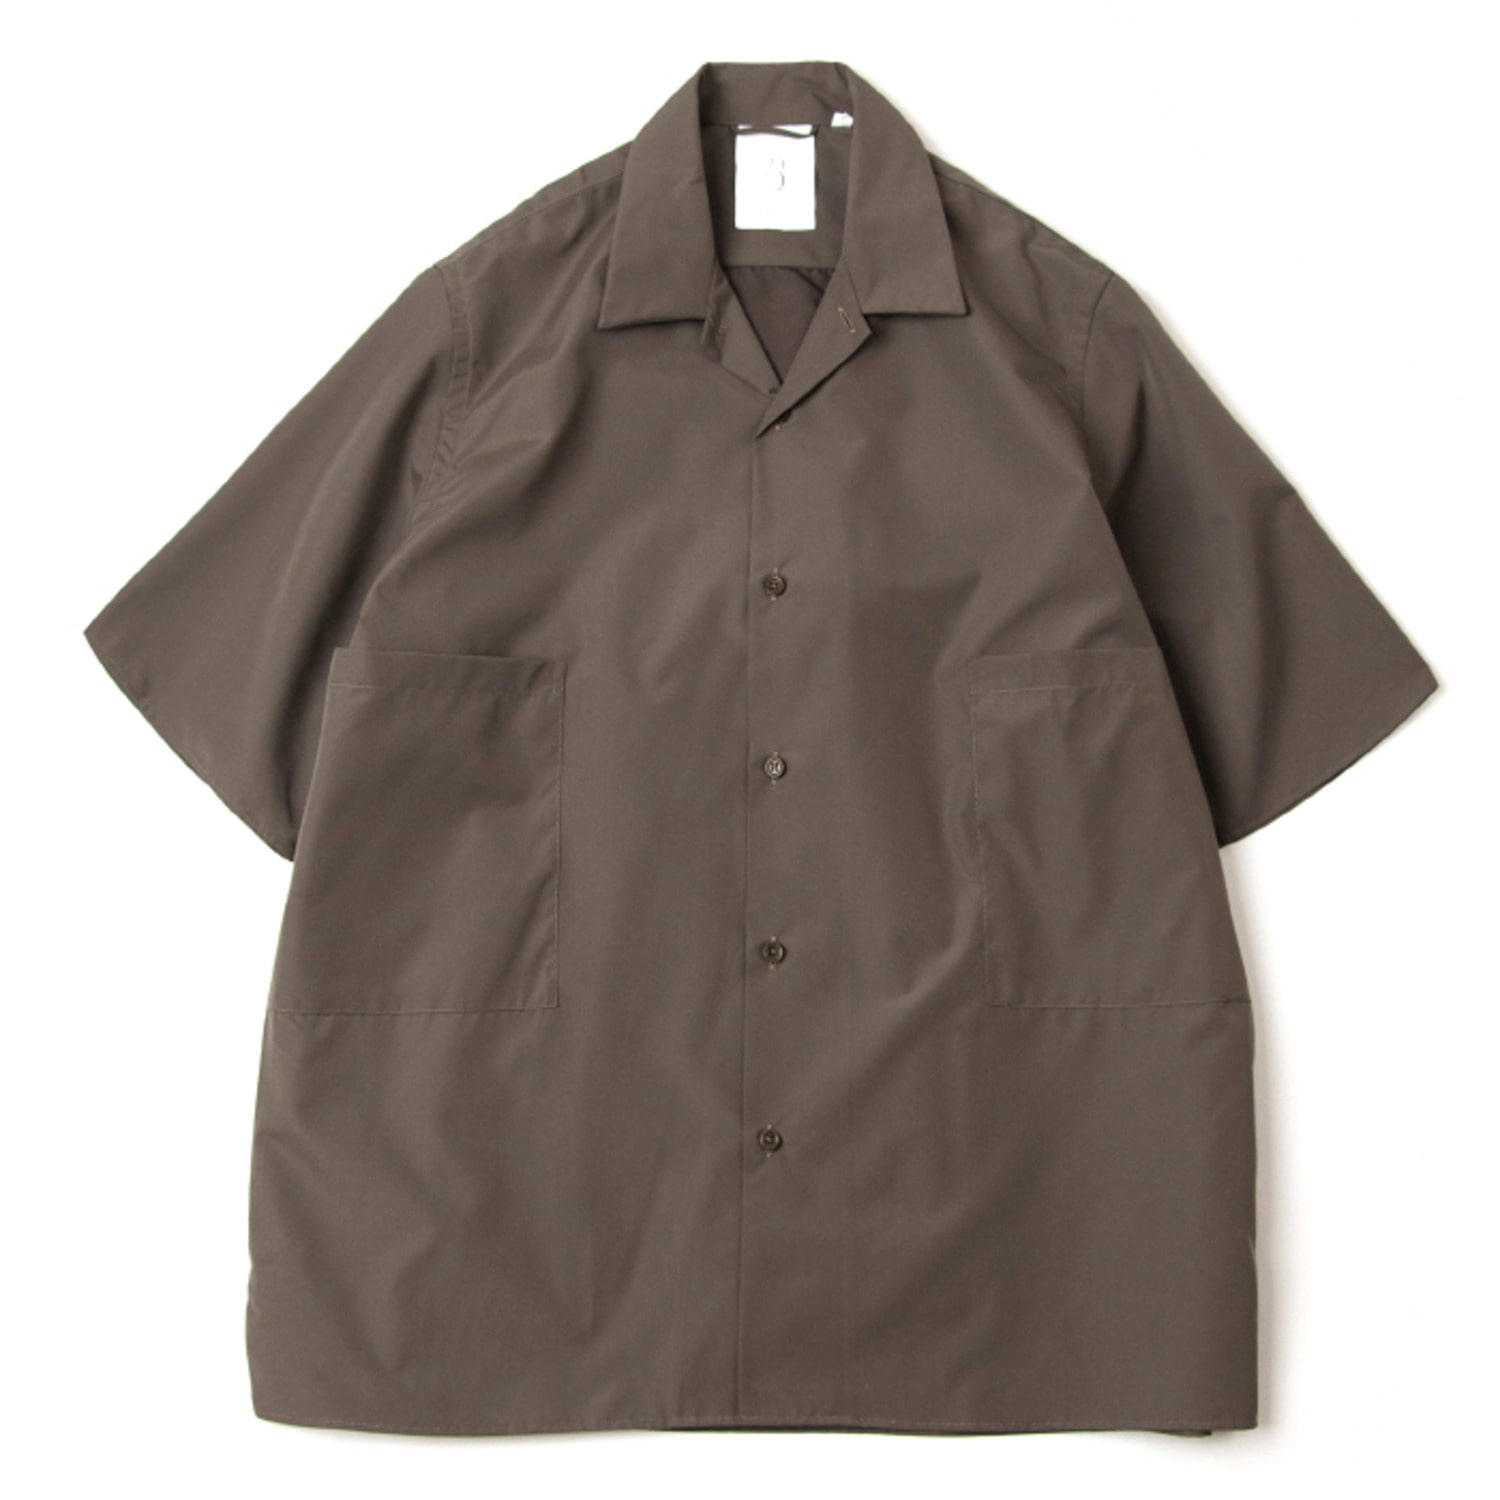 Convertible Collar Shirts 02